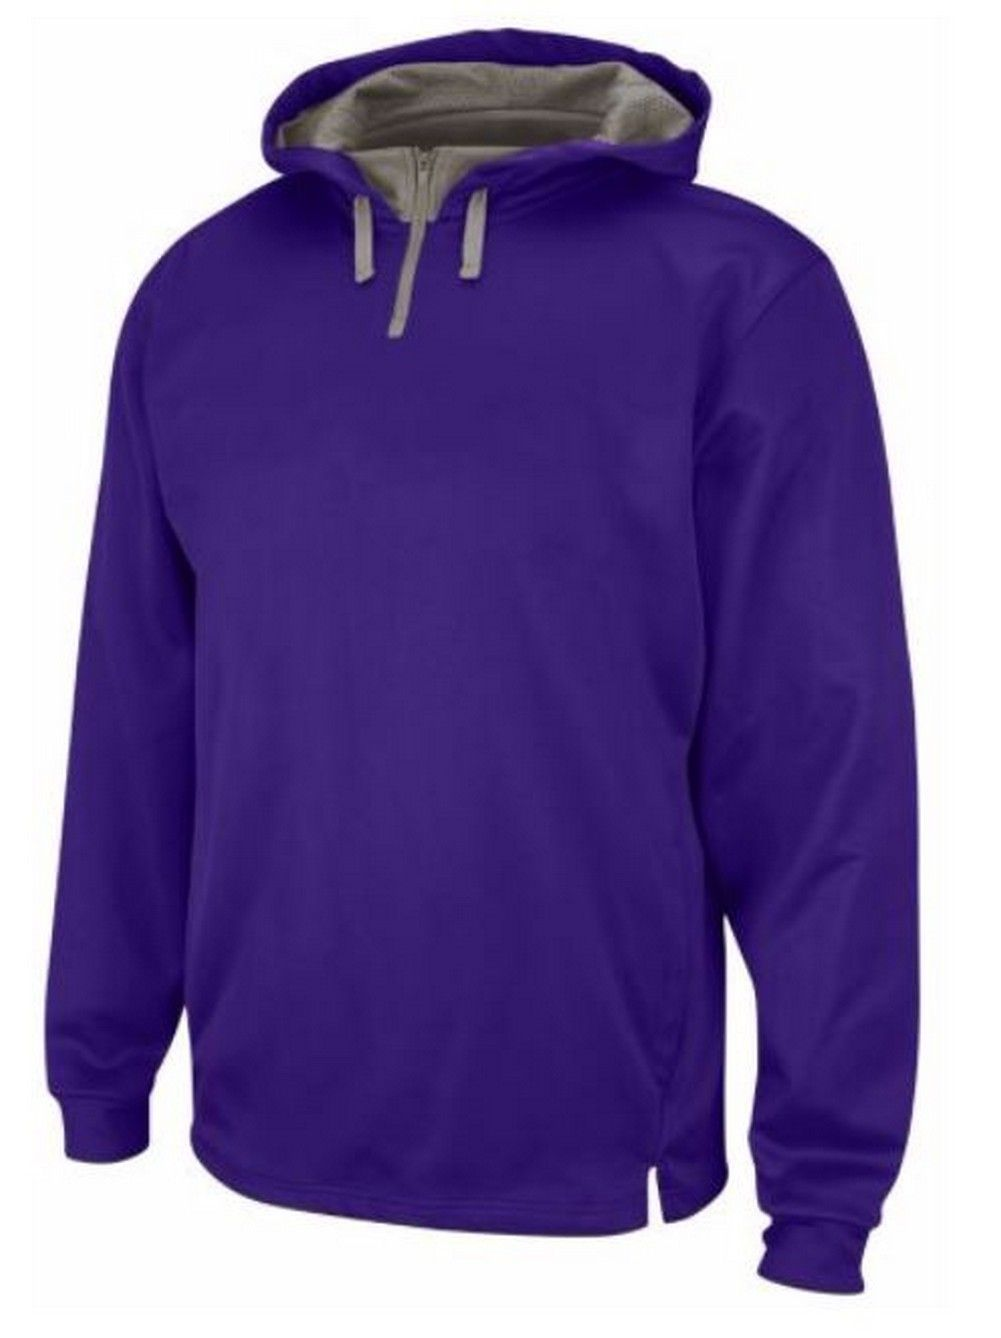 ccd45fa32 Majestic Men's Therma Base Fleece Solid Purple Pullover 1/4 Zip Hoodie  A161-M235